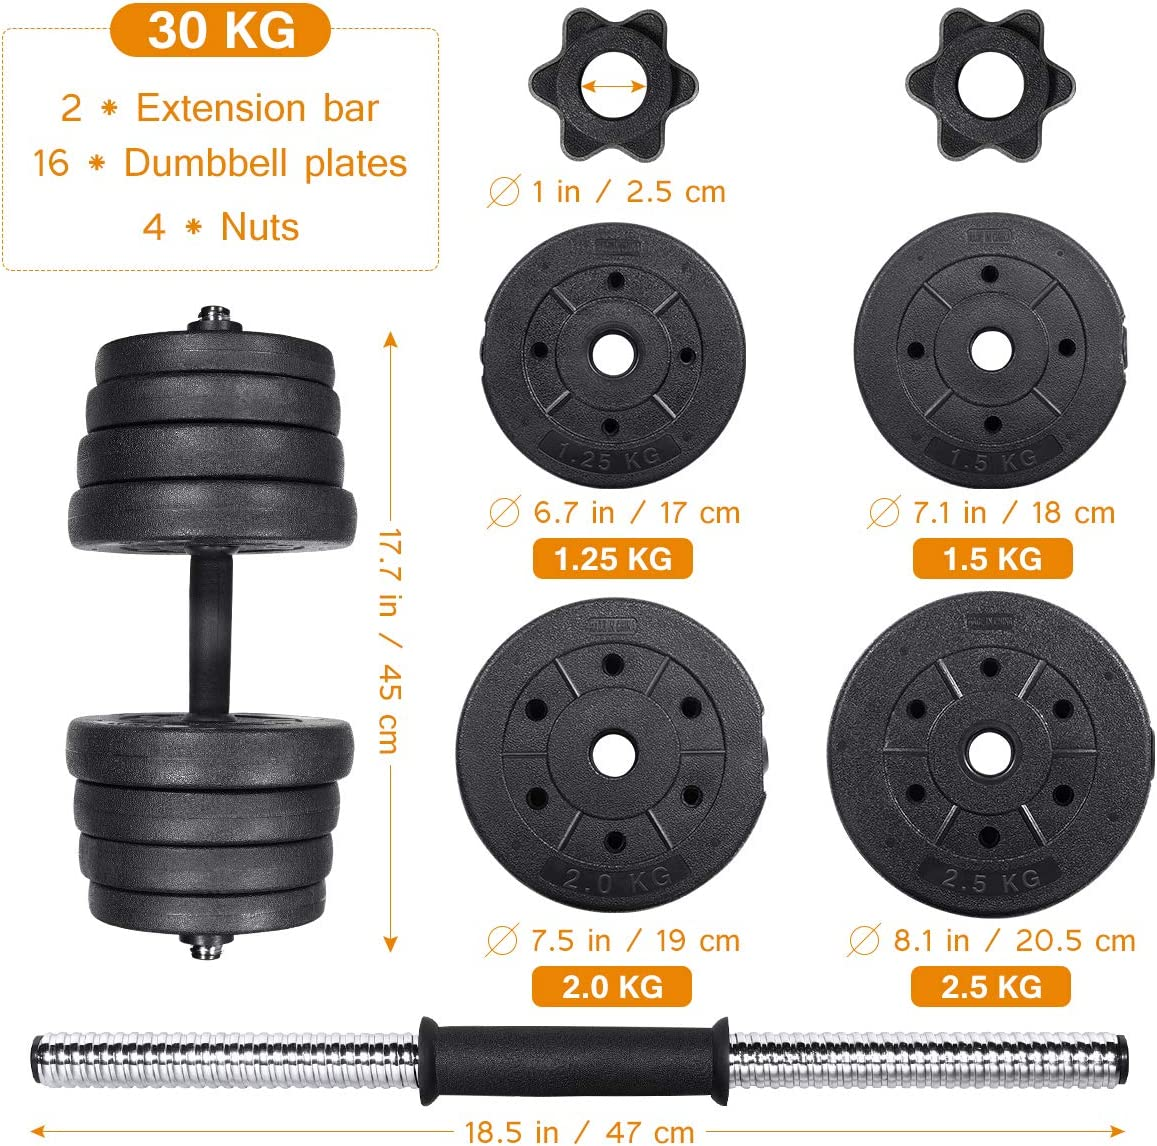 66 LB Weights Dumbbells Set, Adjustable Dumbbells Weights Barbell Set (30KG)